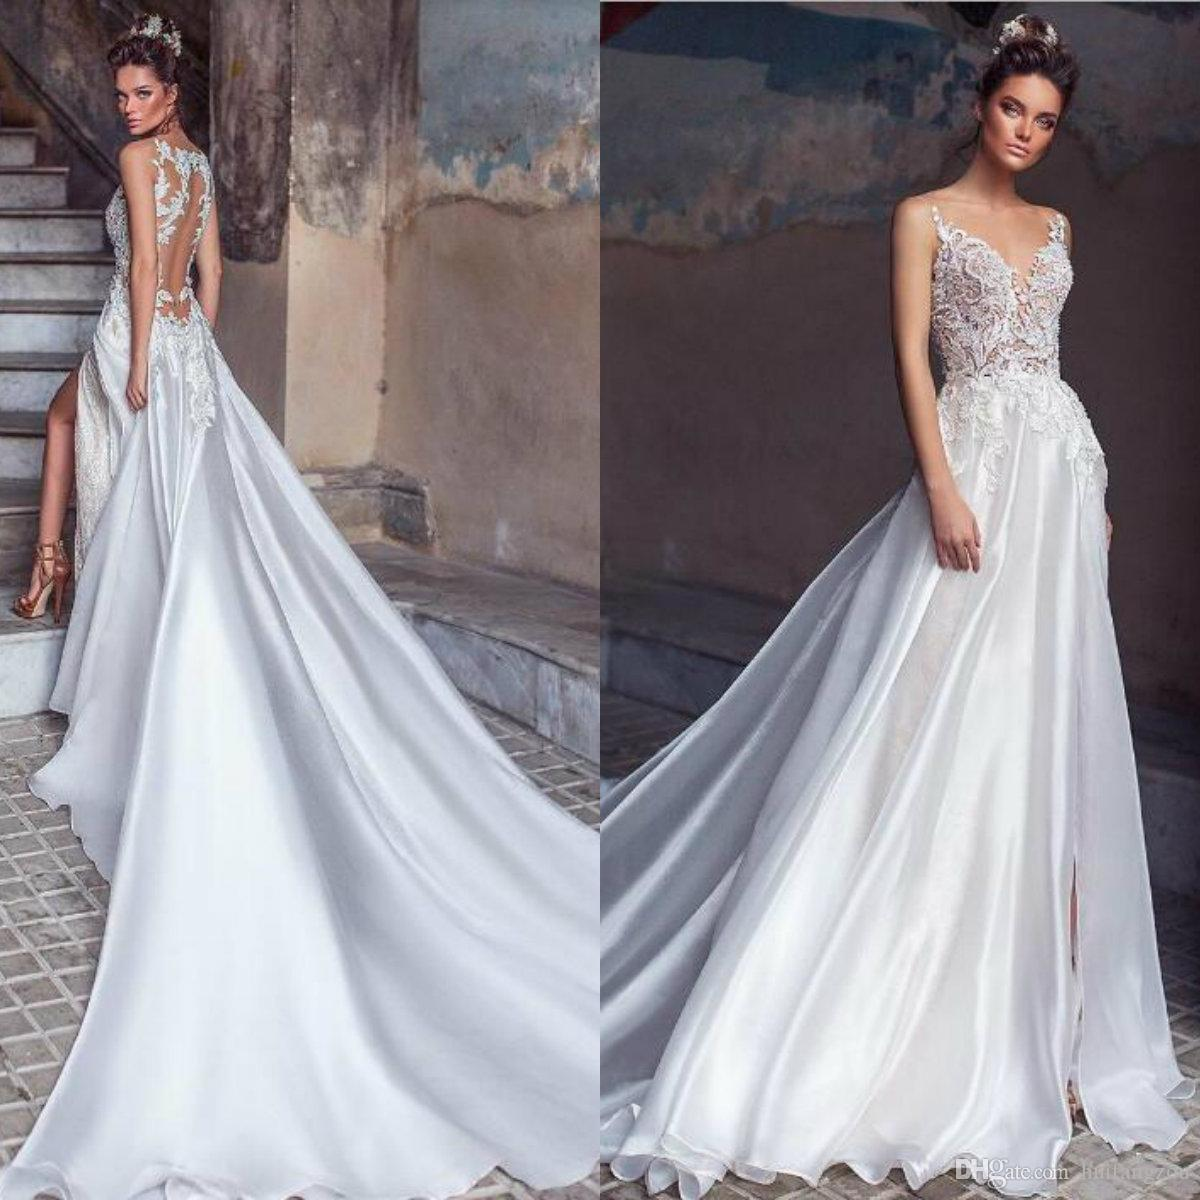 Discount 2019 Upscale Silk Wedding Dress Customized Lace Appliques Side Split Sweep Train Bridal Gowns Sheer Back Flowing Beach Dresses Tidebuy: Silk Wedding Dresses With Straps At Reisefeber.org